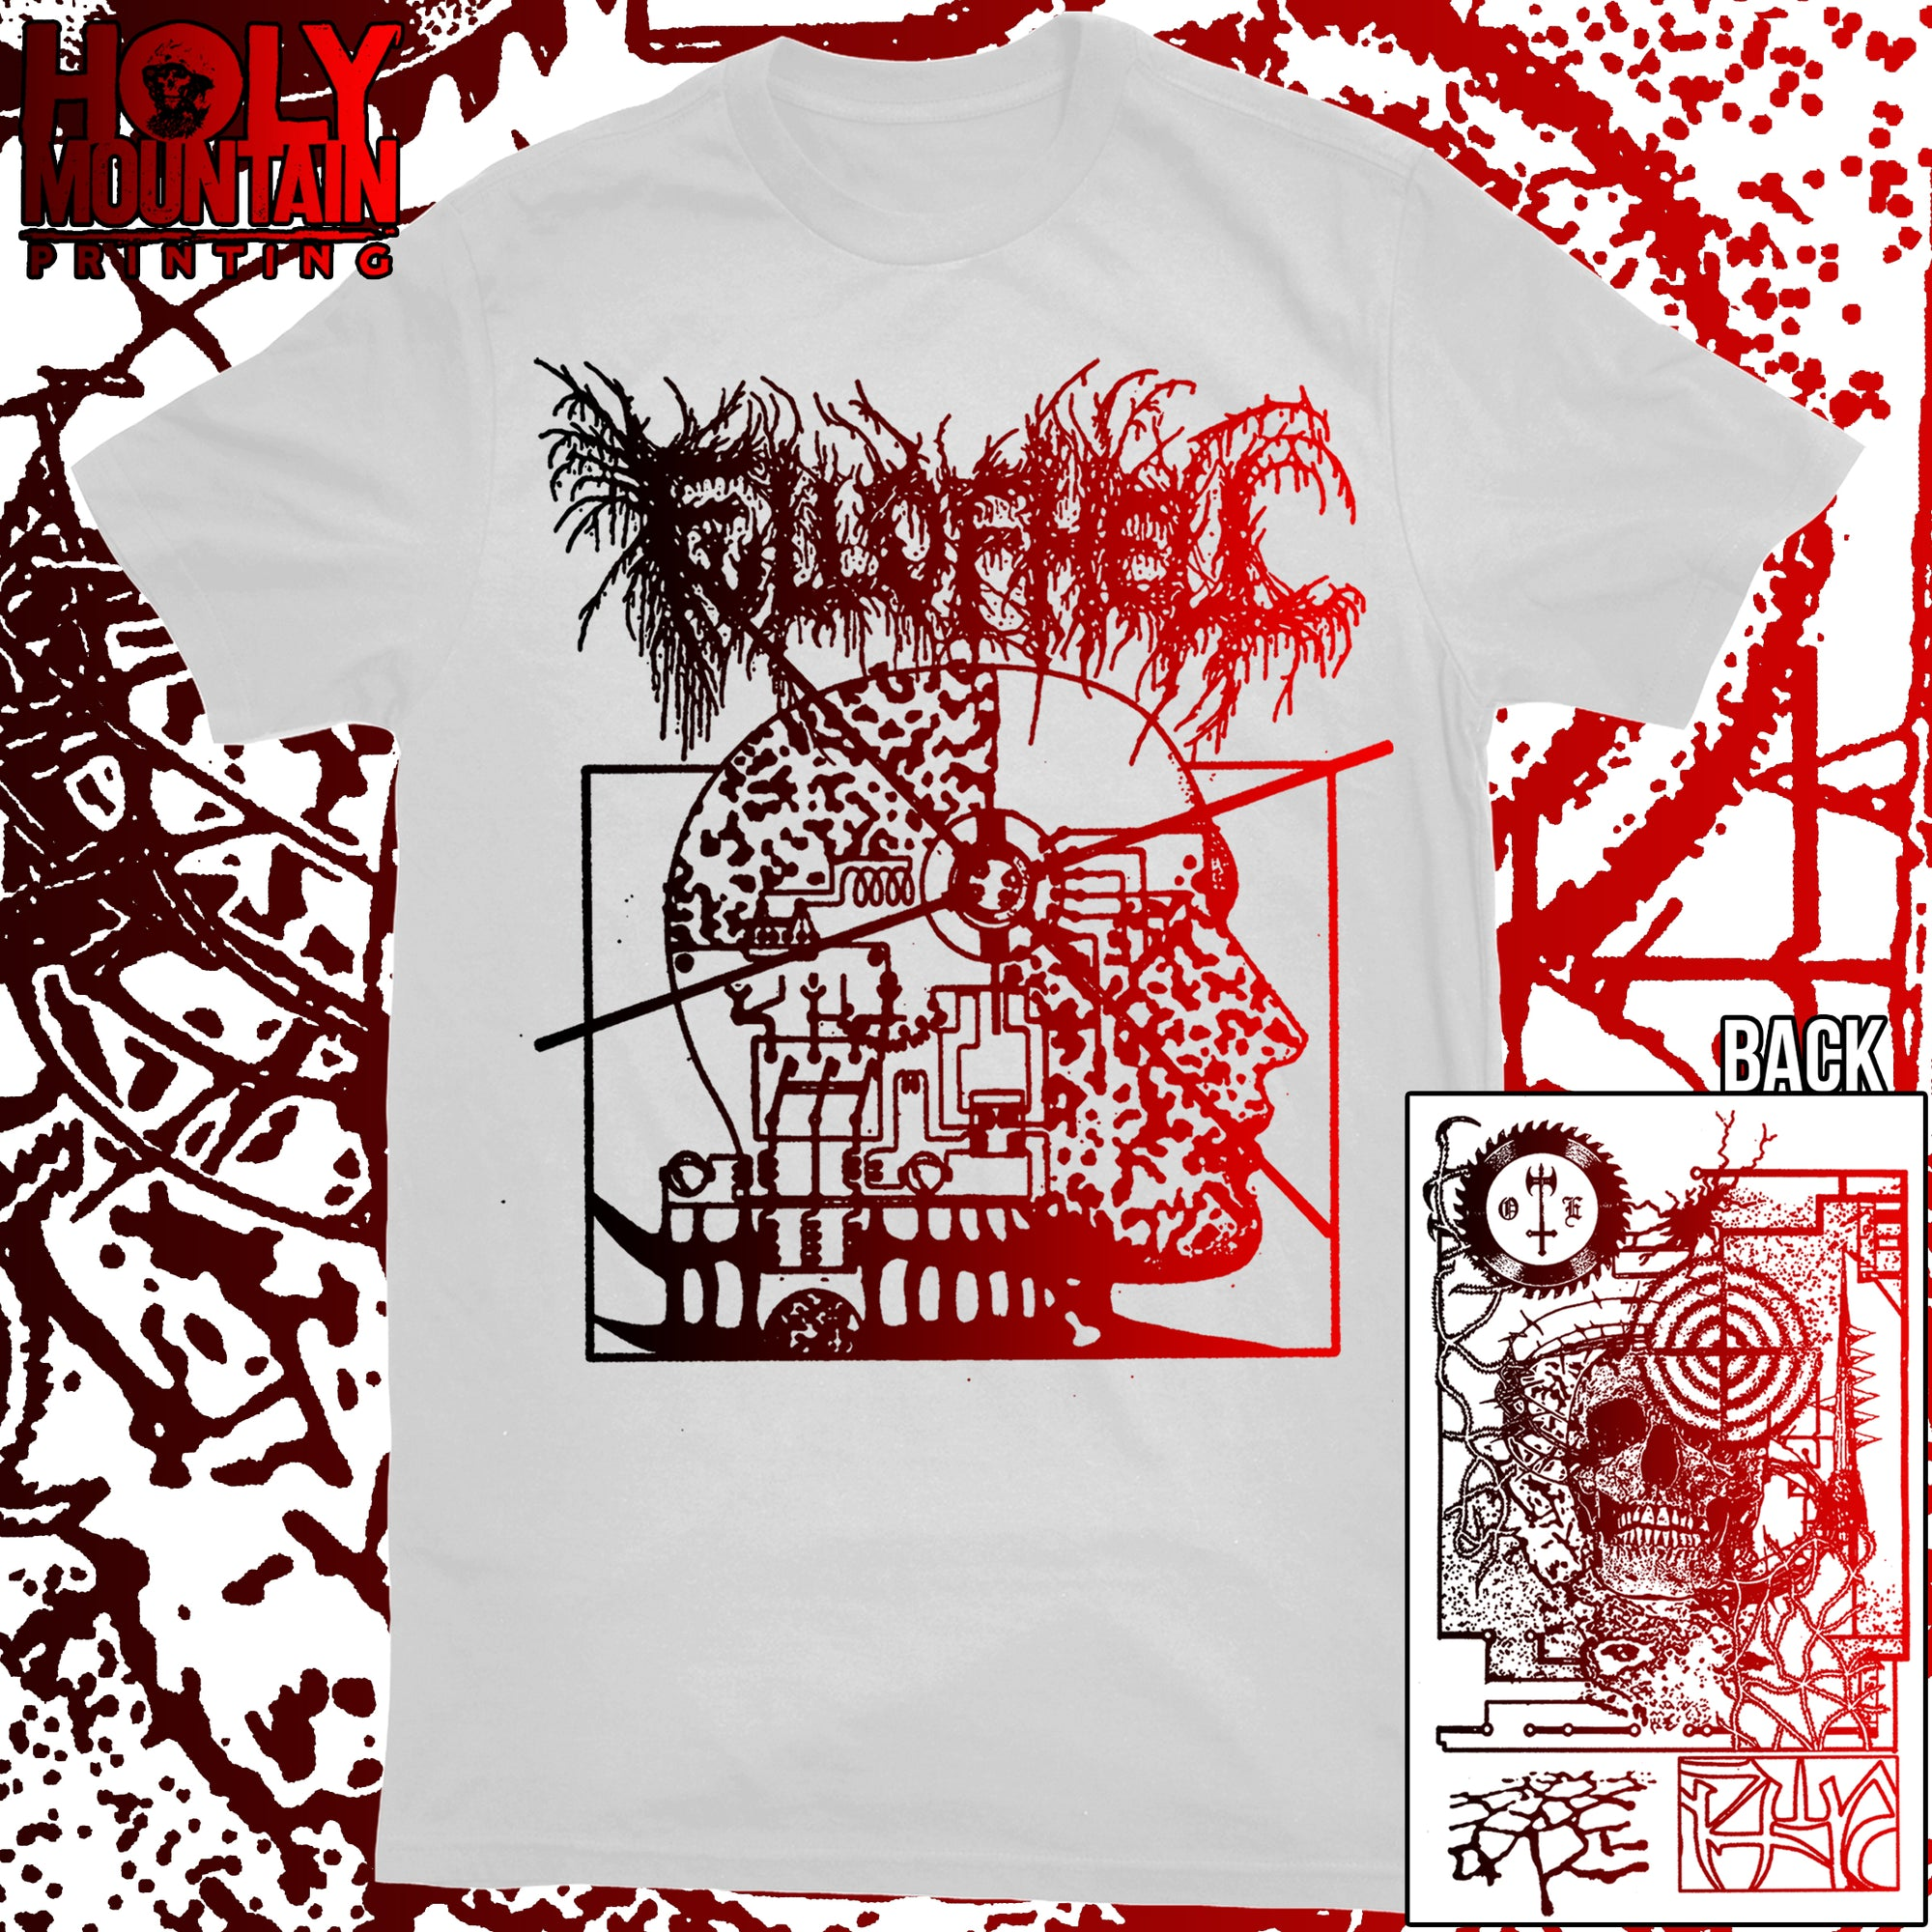 "FULL OF HELL ""DIGITAL PRISON"" SHIRT"